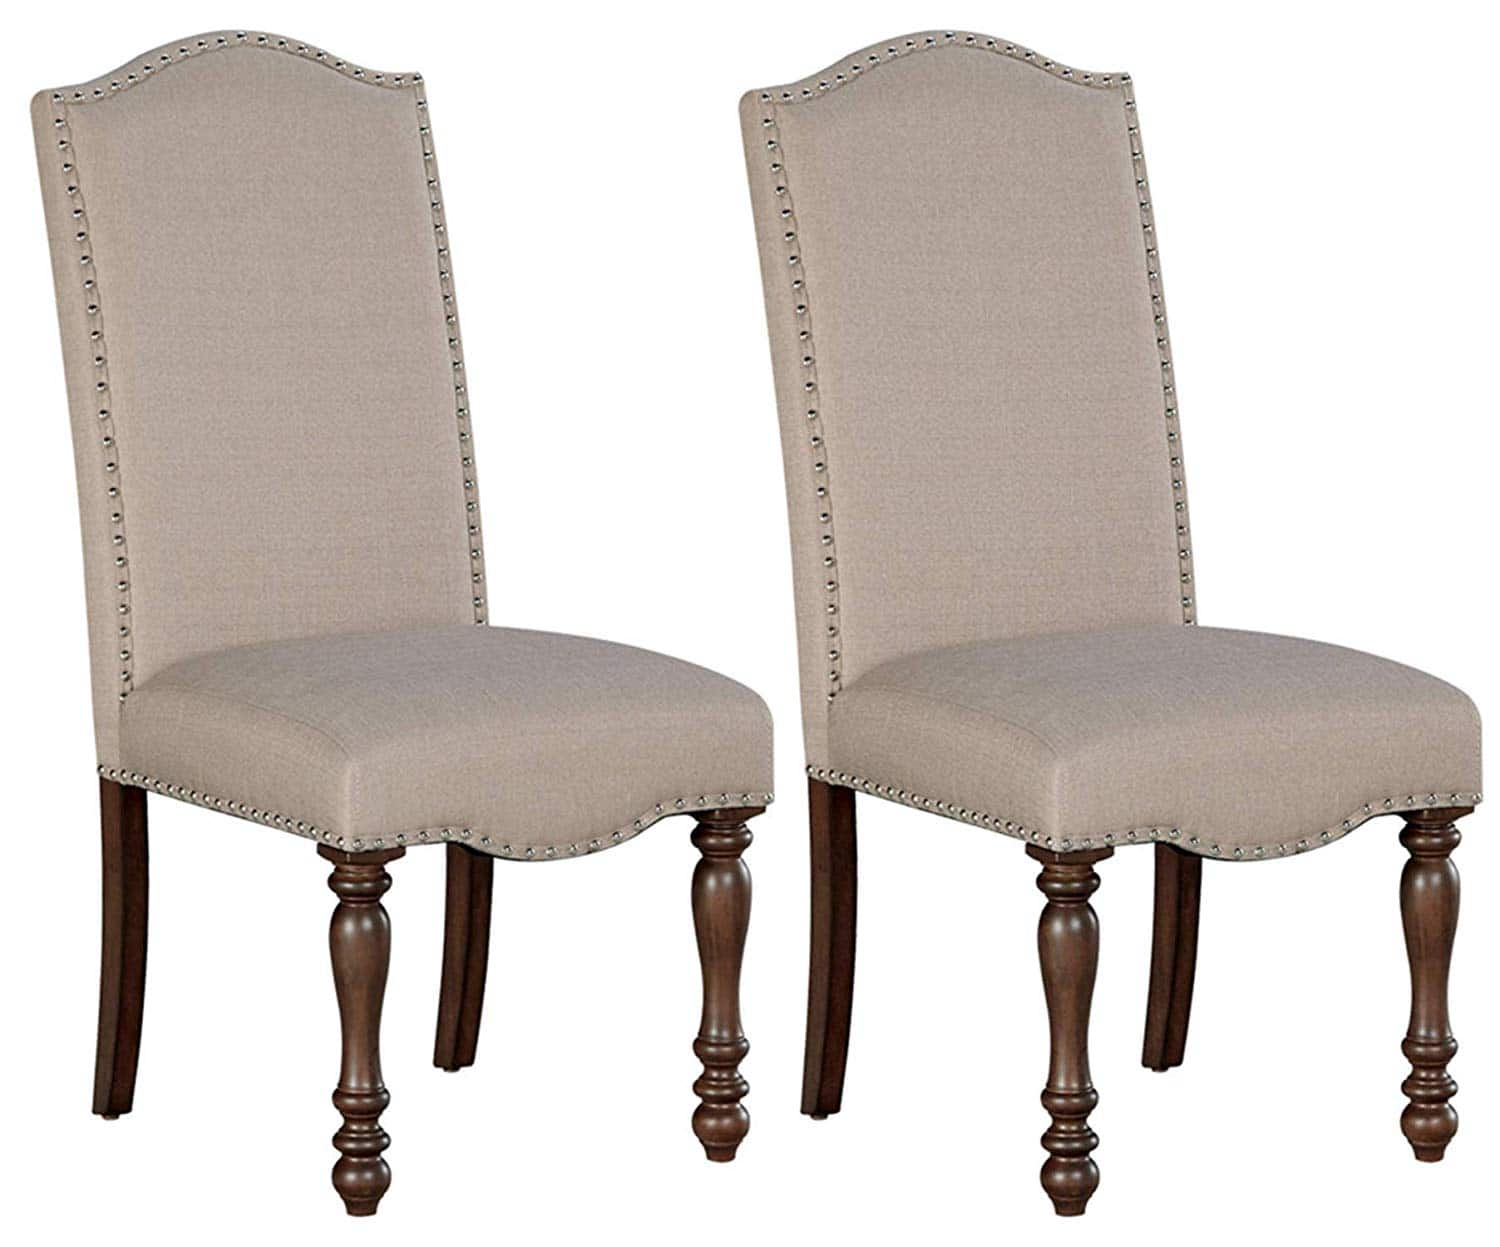 A set of 2 Ashley Furniture Signature Design Baxenburg Dining Room Chair  for $63.70